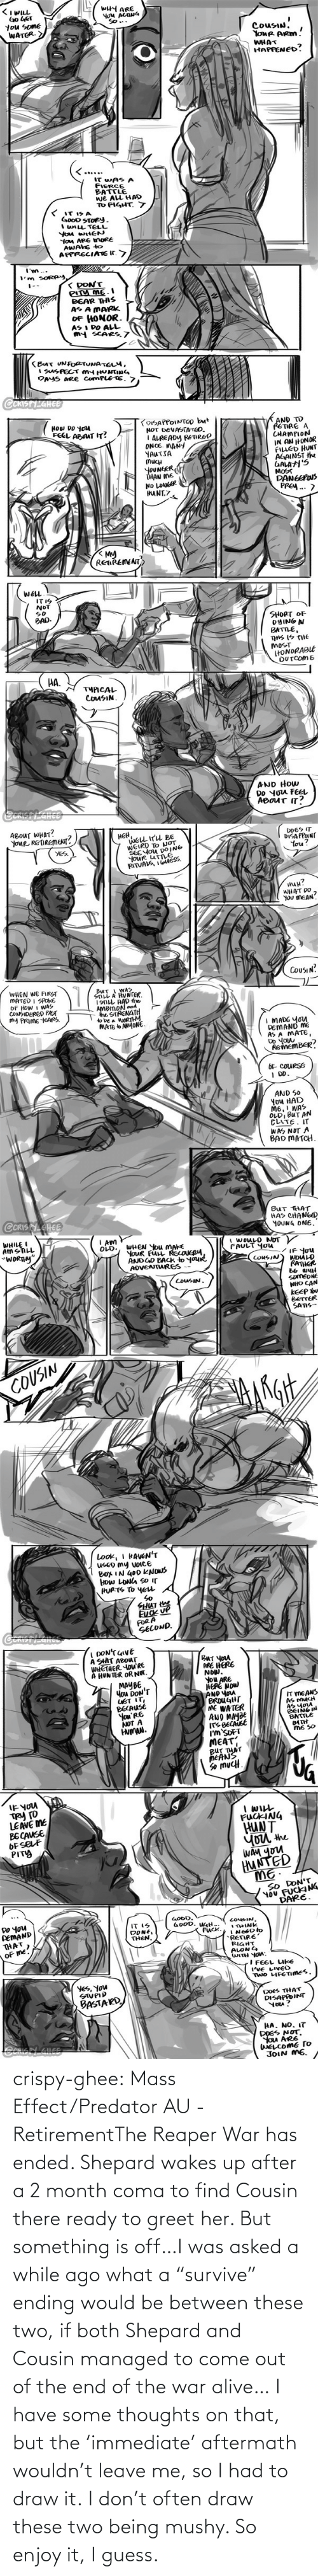 "Have Some: crispy-ghee:  Mass Effect/Predator AU - RetirementThe Reaper War has ended. Shepard wakes up after a 2 month coma to find Cousin there ready to greet her. But something is off…I was asked a while ago what a ""survive"" ending would be between these two, if both Shepard and Cousin managed to come out of the end of the war alive… I have some thoughts on that, but the 'immediate' aftermath wouldn't leave me, so I had to draw it. I don't often draw these two being mushy. So enjoy it, I guess."